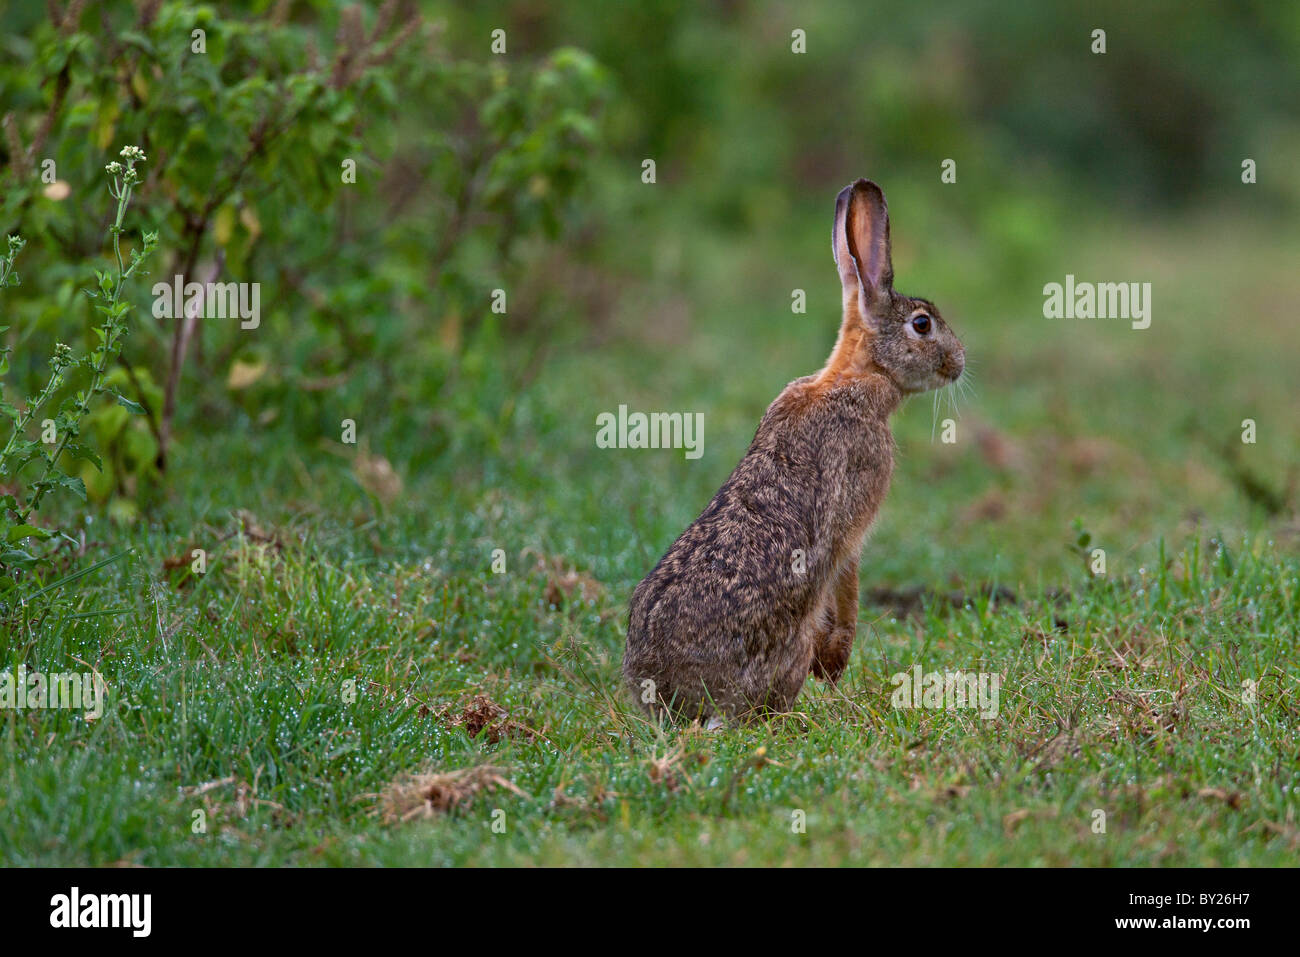 A Scrub Hare pauses on its hind legs in damp grass in the Salient of the Aberdare National Park. - Stock Image